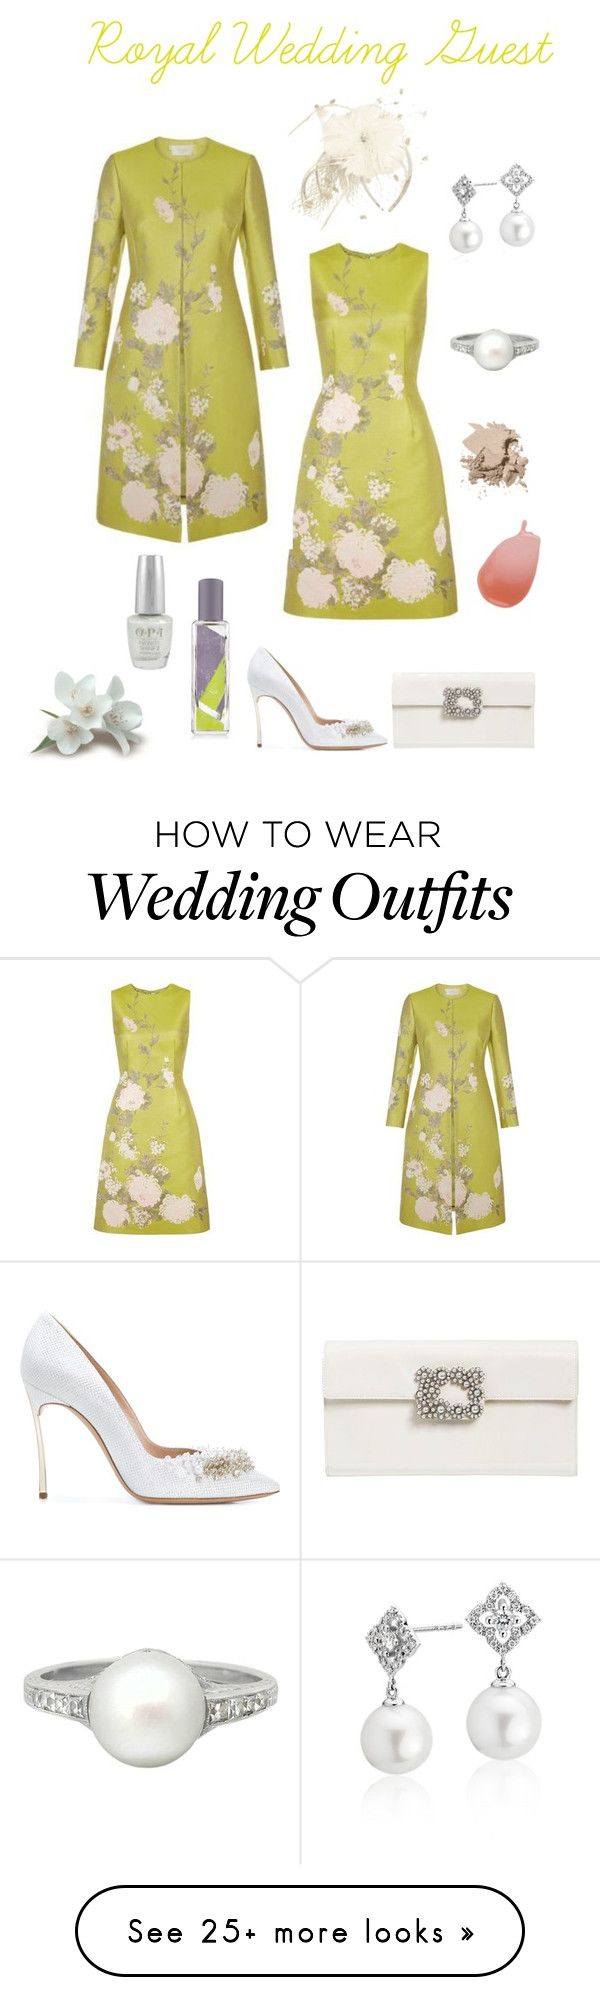 """Royal Wedding Guest"" by marnie1979 on Polyvore featuring Roger Vivier, Casadei, Blue Nile, Tiffany & Co., OPI, Jo Malone and Bobbi Brown Cosmetics"